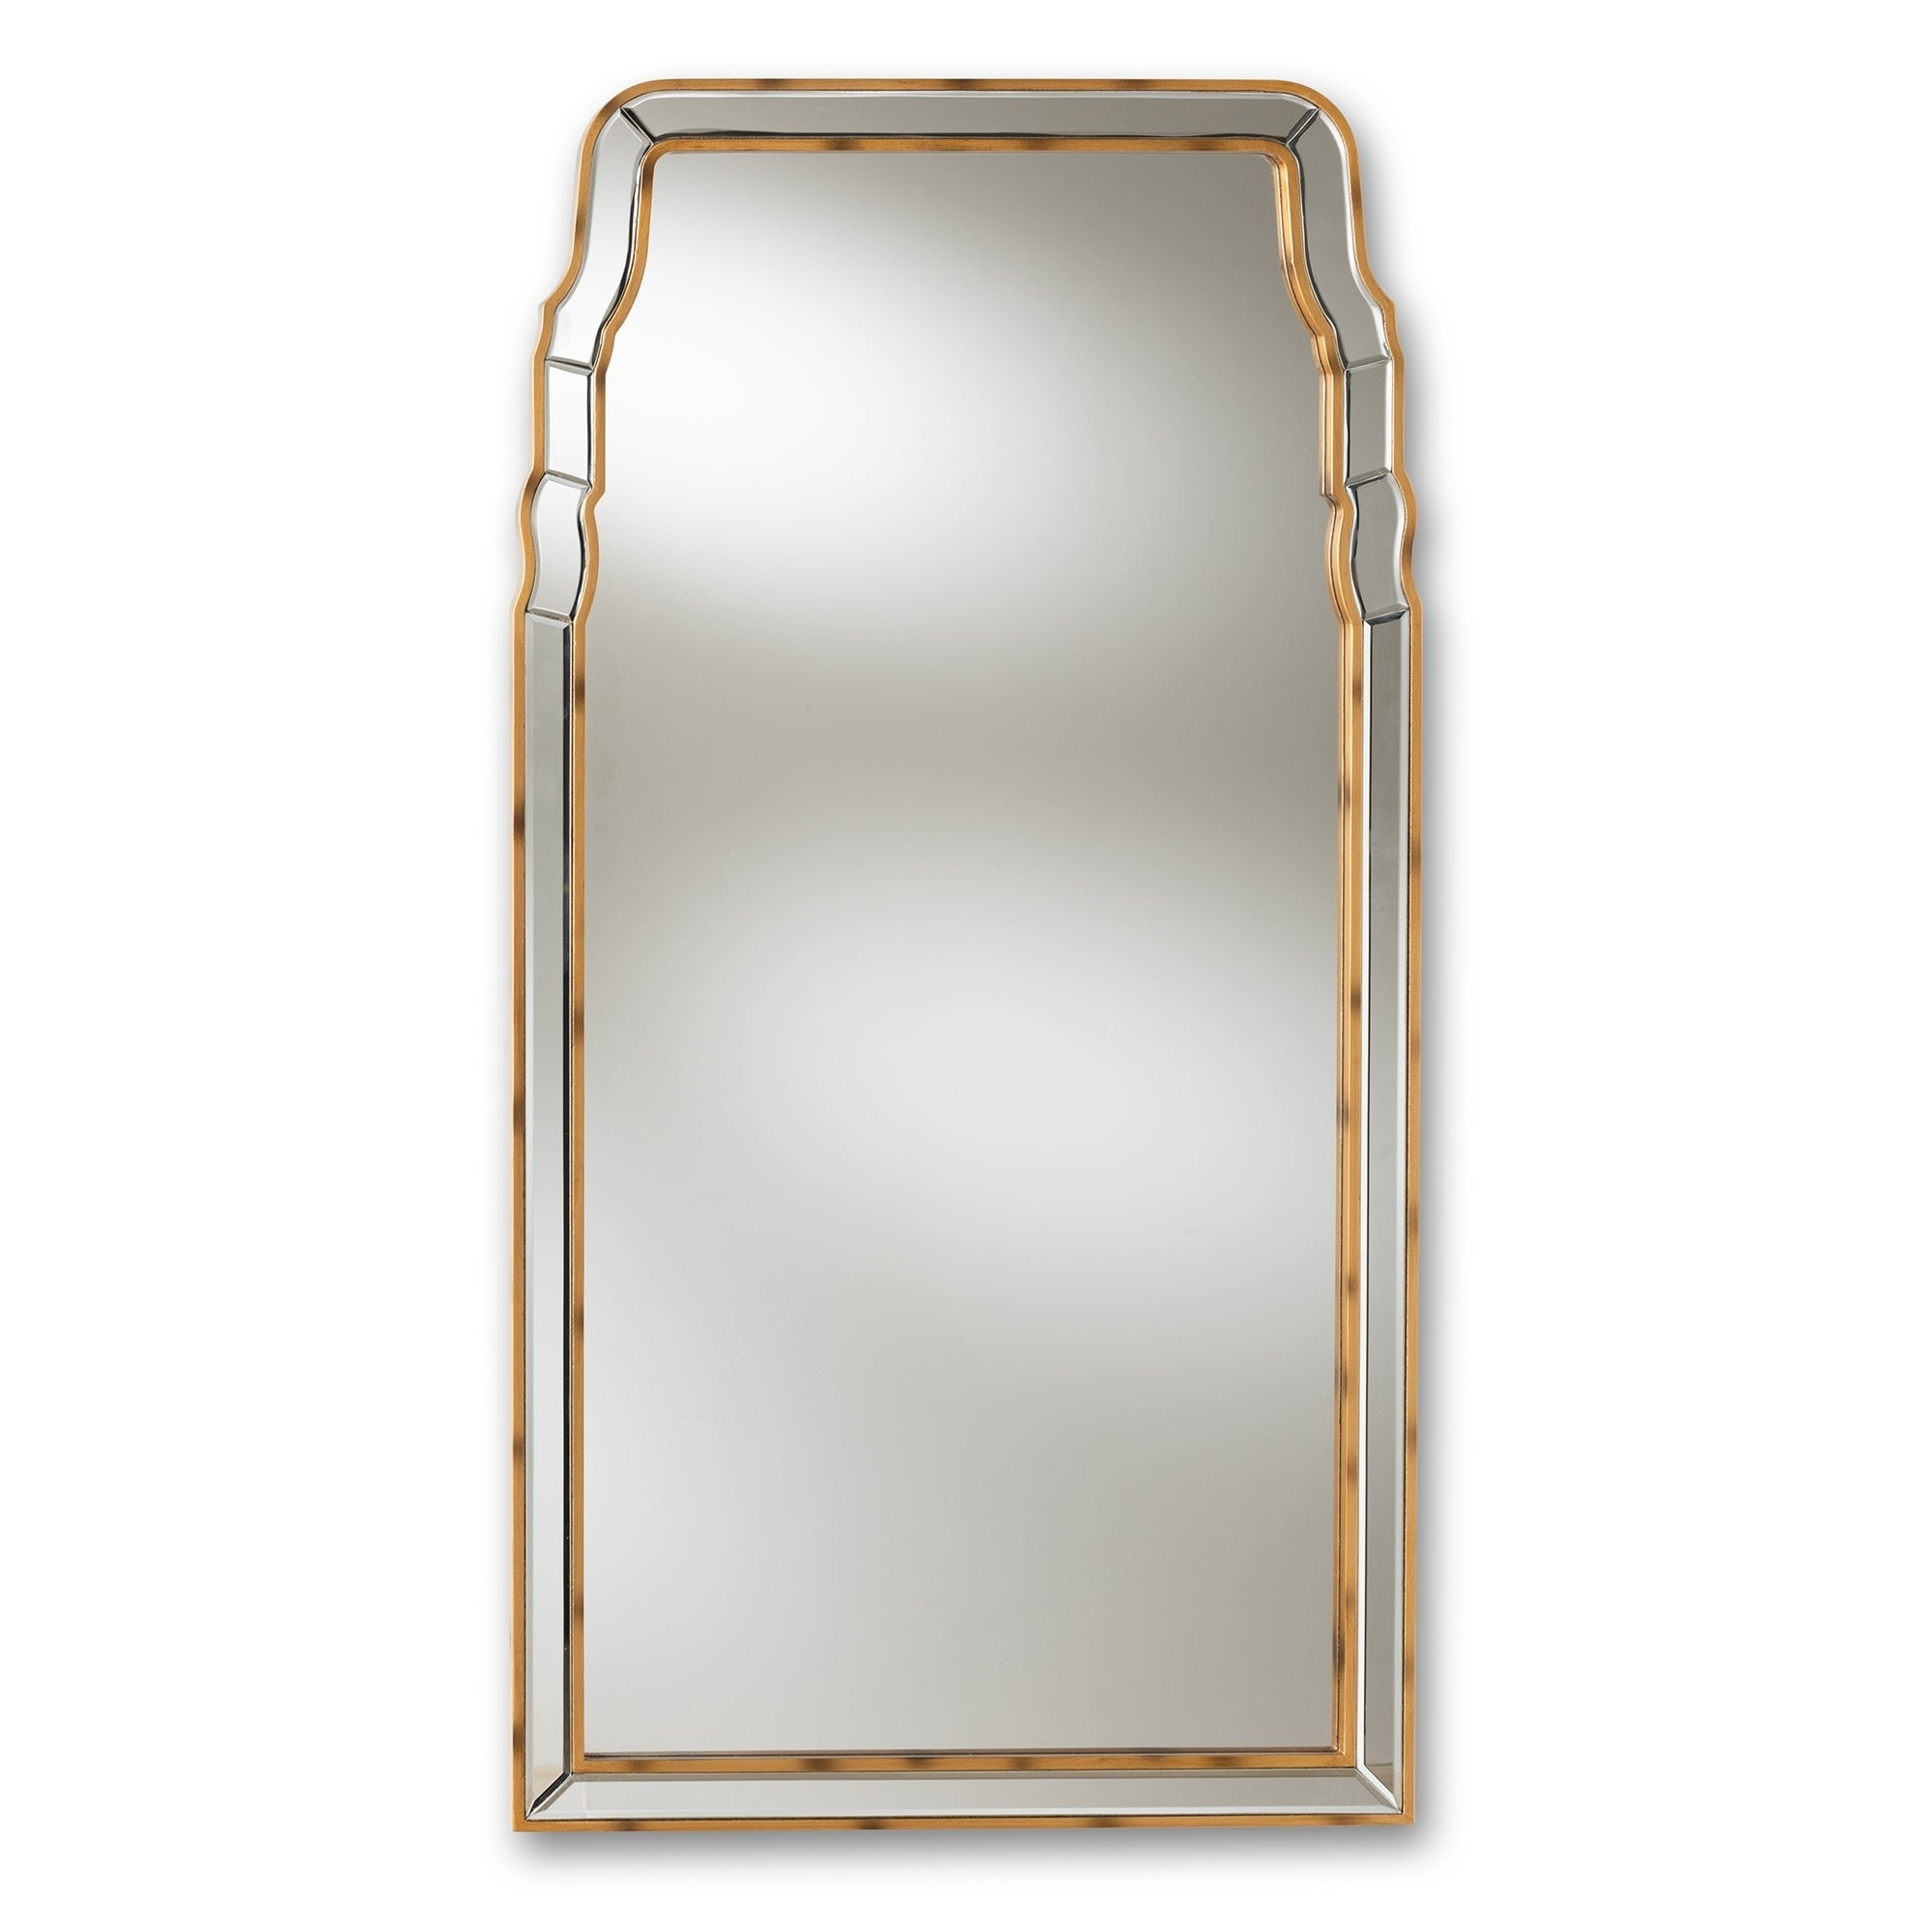 Gentil Shop Queen Anne Style Antique Gold Wall Mirror By Baxton Studio   Antique  Gold   On Sale   Free Shipping Today   Overstock   24081371